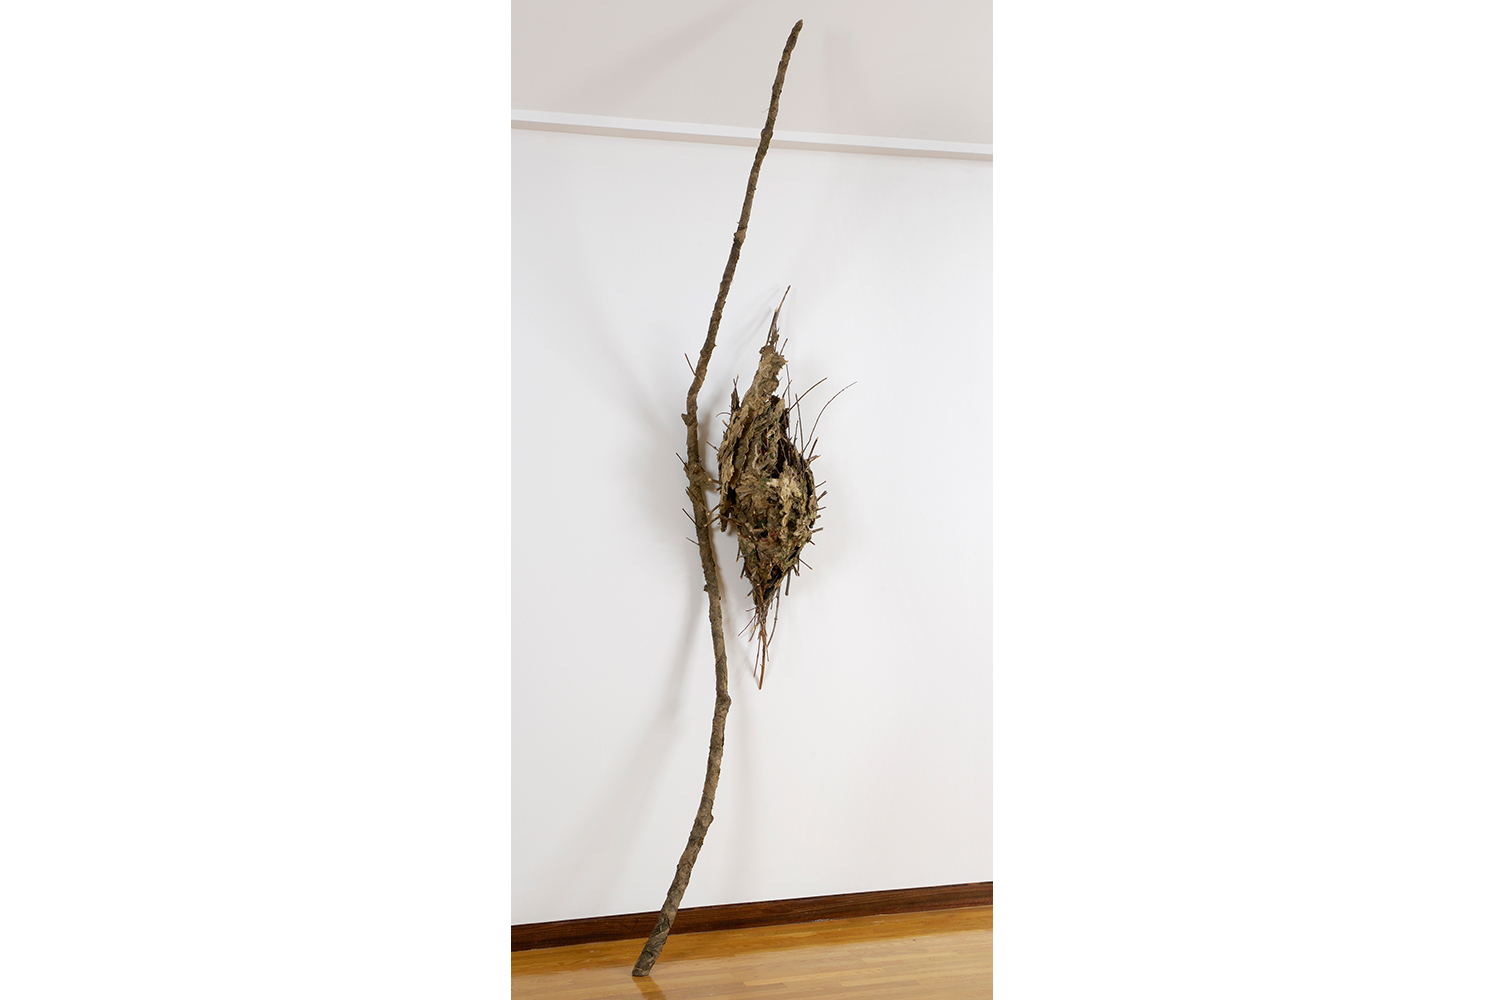 Chrysalis natural art sculpture from Donna Forma